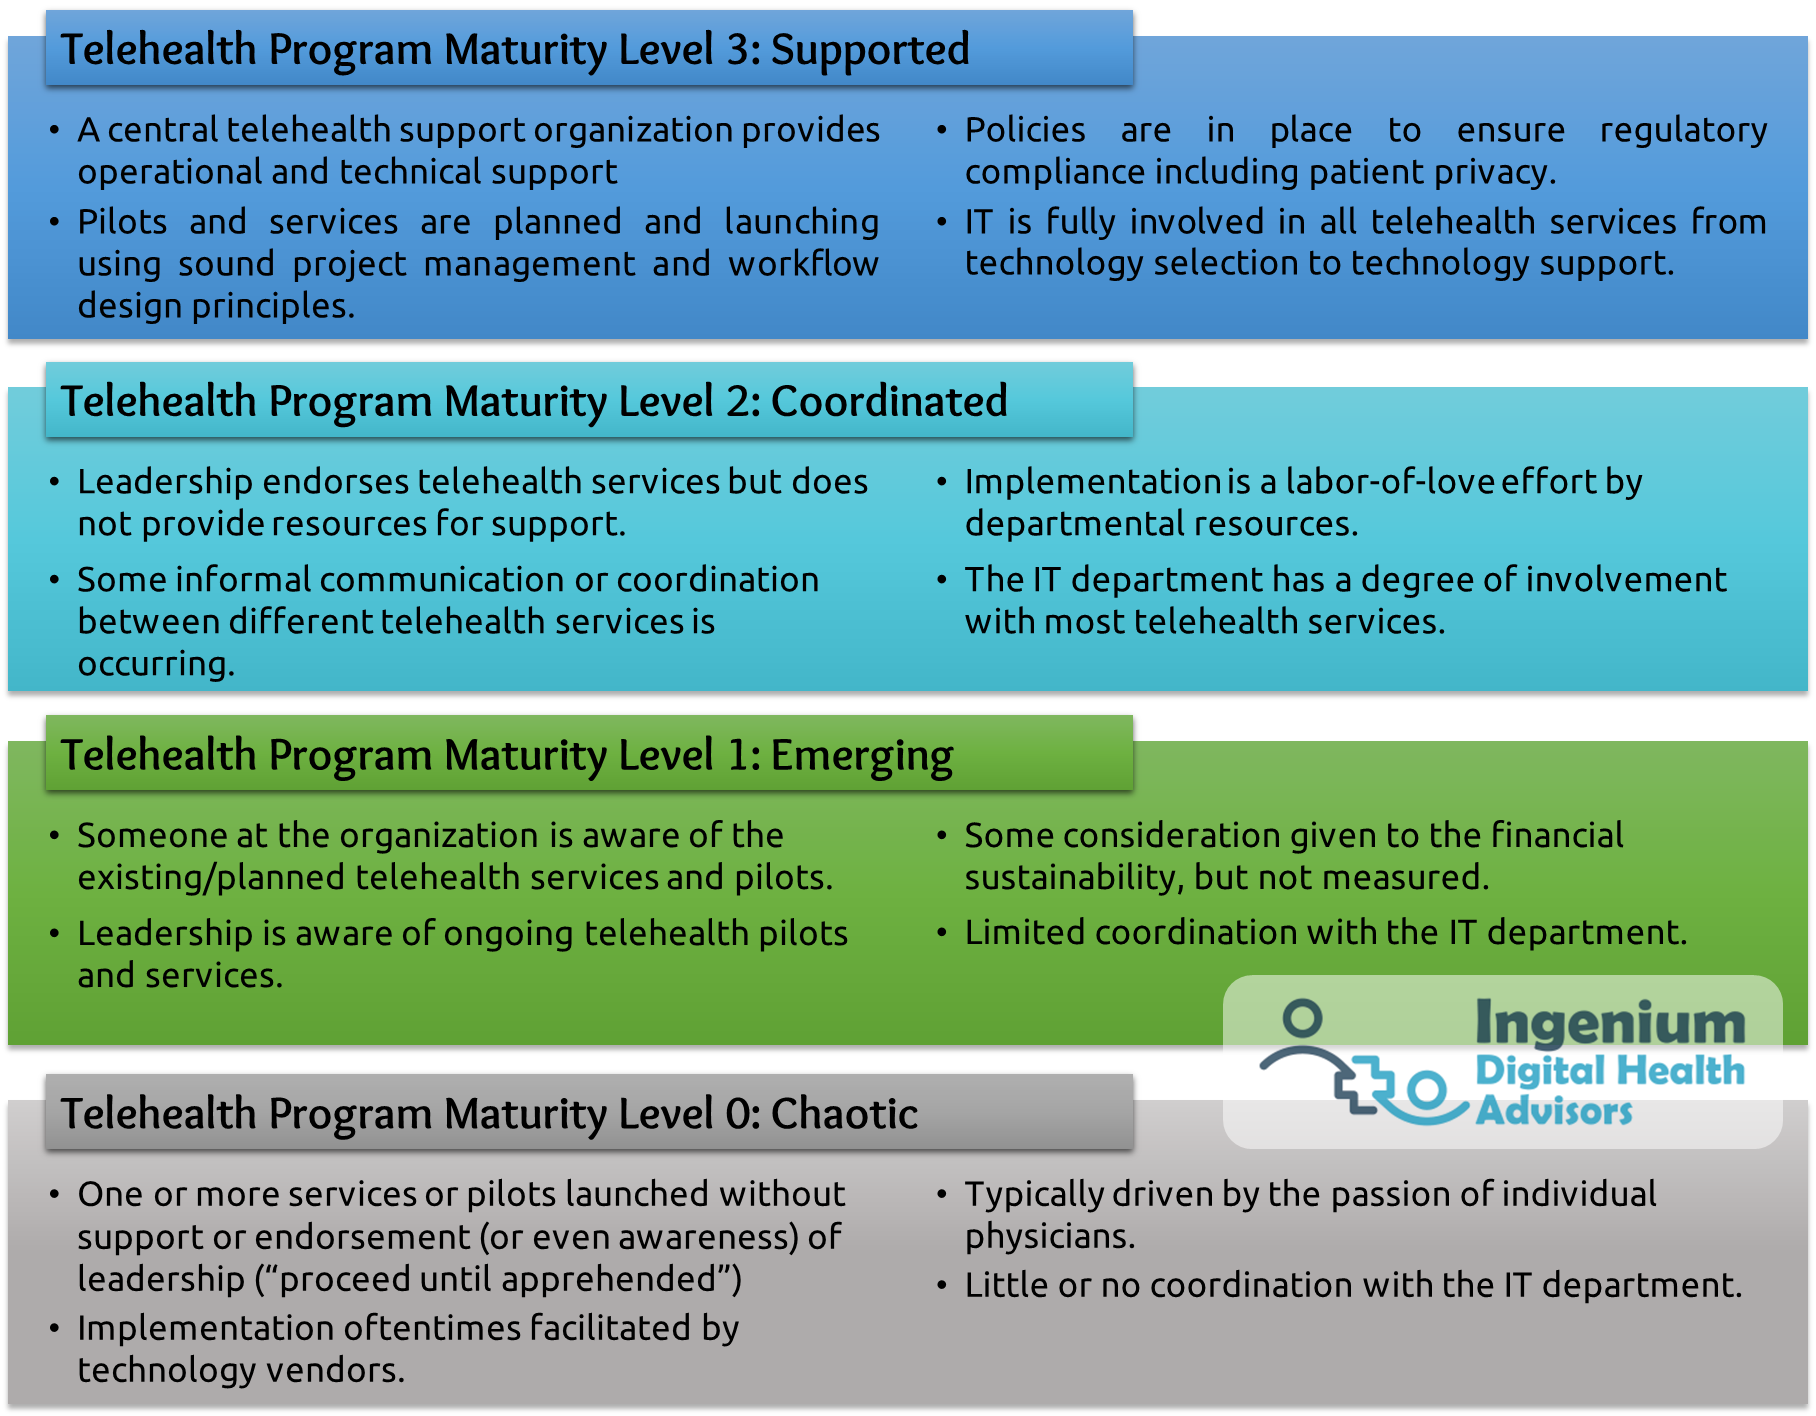 Telehealth Program Maturity Level